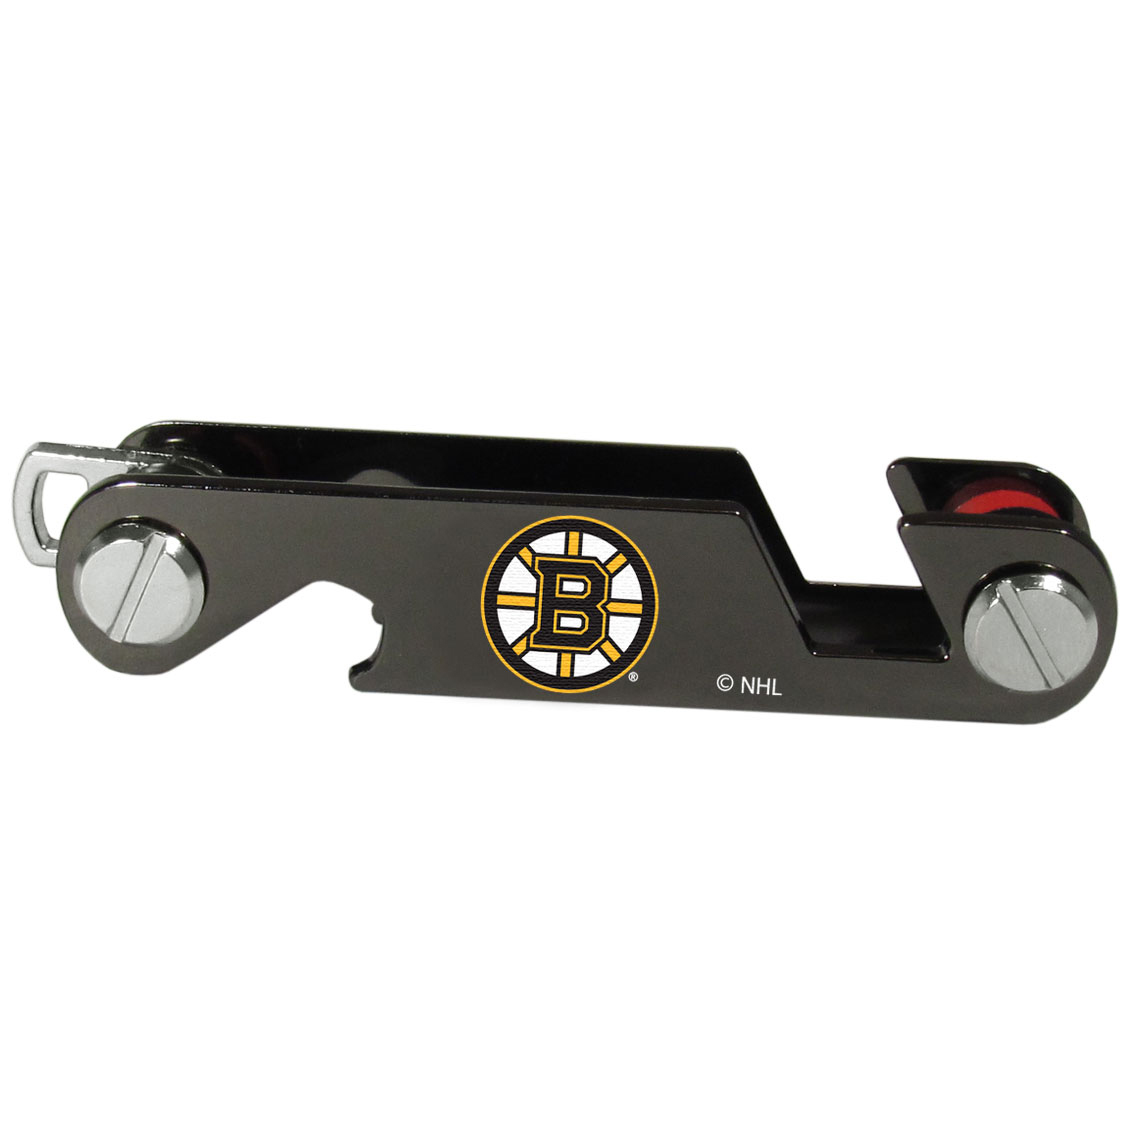 Boston Bruins® Key Organizer - This innovative key organizer stores your keys in a compact, easy to access bundle with Swiss style engineering. With the Boston Bruins® key organizer you can load up to 10 keys that zipper back into the organizer so that you never have to deal with keys poking you in your pocket, damaging your purse or simply creating a ton of noise. There is a handy loop piece to attach your larger car key or fob.